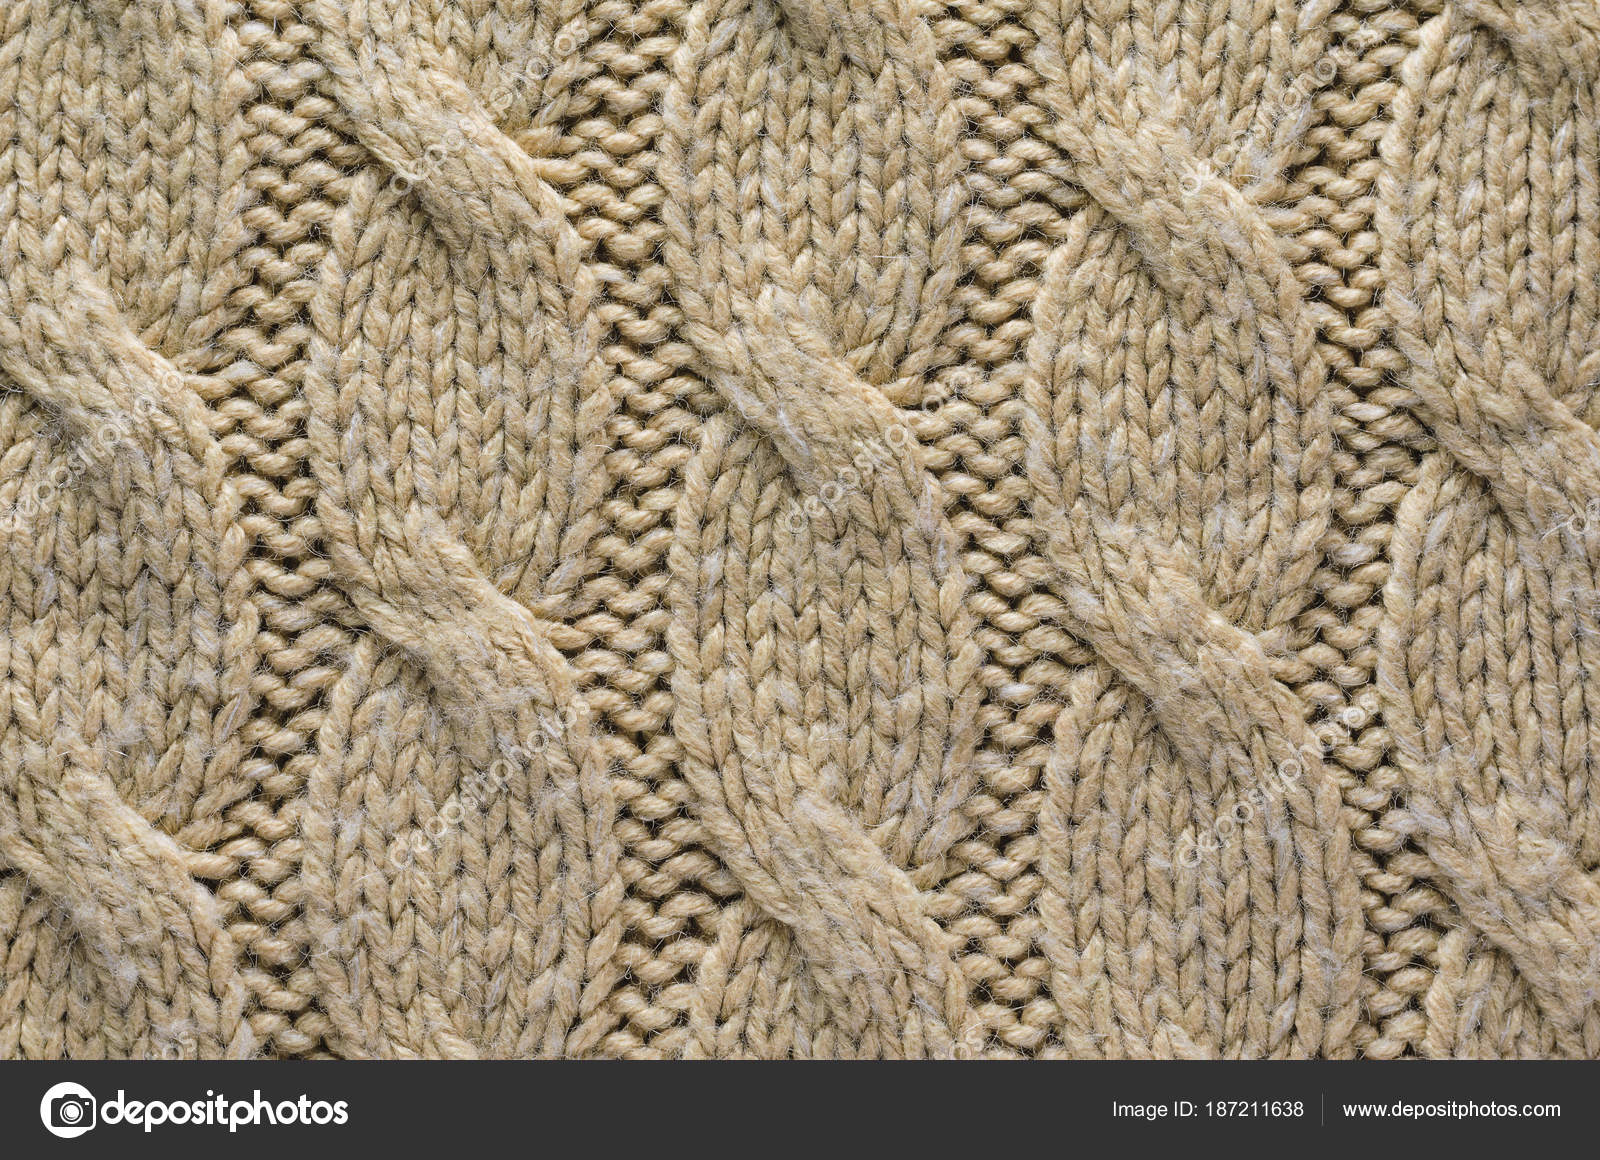 b530d5dade3 Beige Cable Knit Texture Texture Knitted Sweater Fabric Uniform Pattern —  Stock Photo